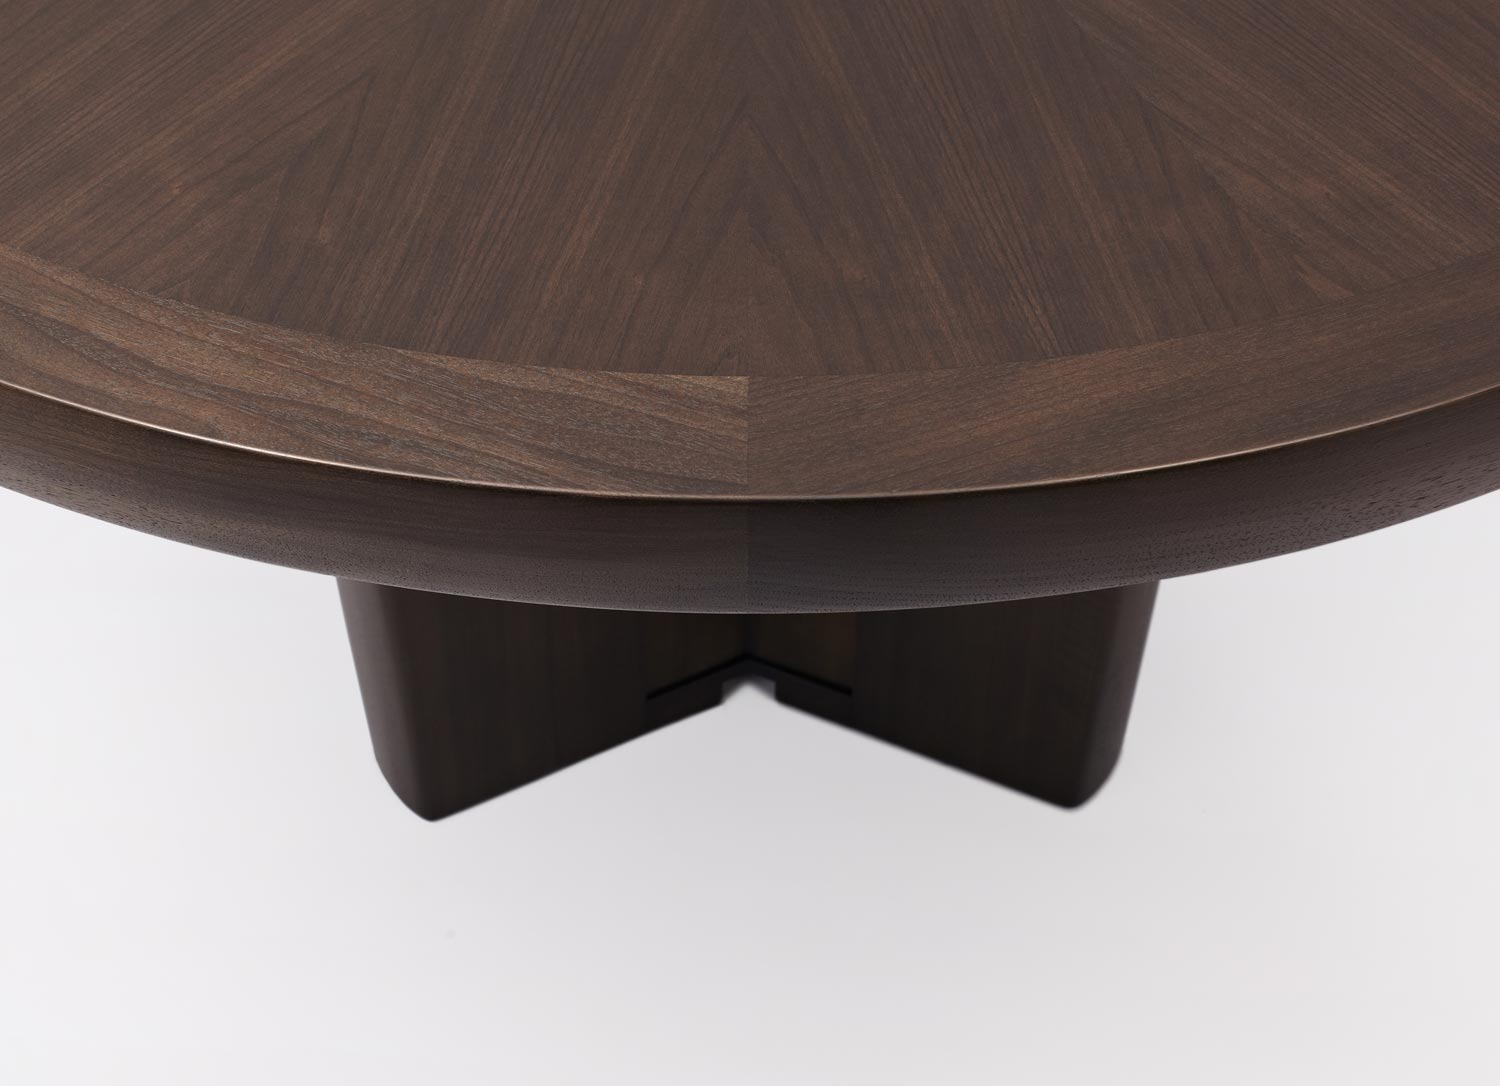 0d9be4d99892 Round pedestal dining table with four (4) legs. Base made of solid walnut.  Top has solid walnut edges and starburst veneer pattern.